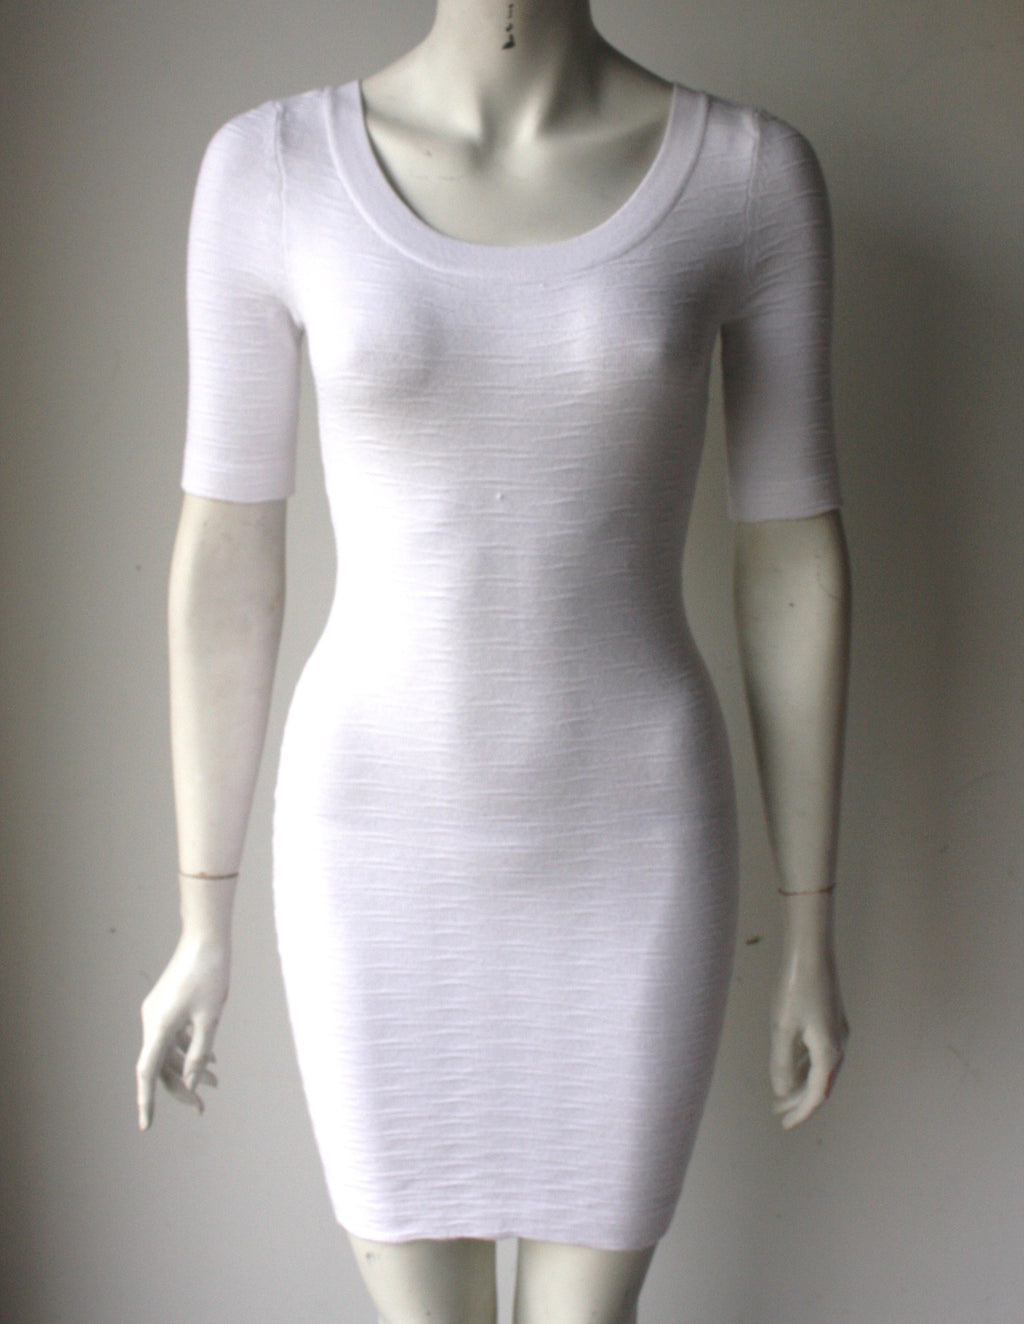 Guess by Marciano White Round Neck BodyCon Dress - Joyce's Closet  - 1